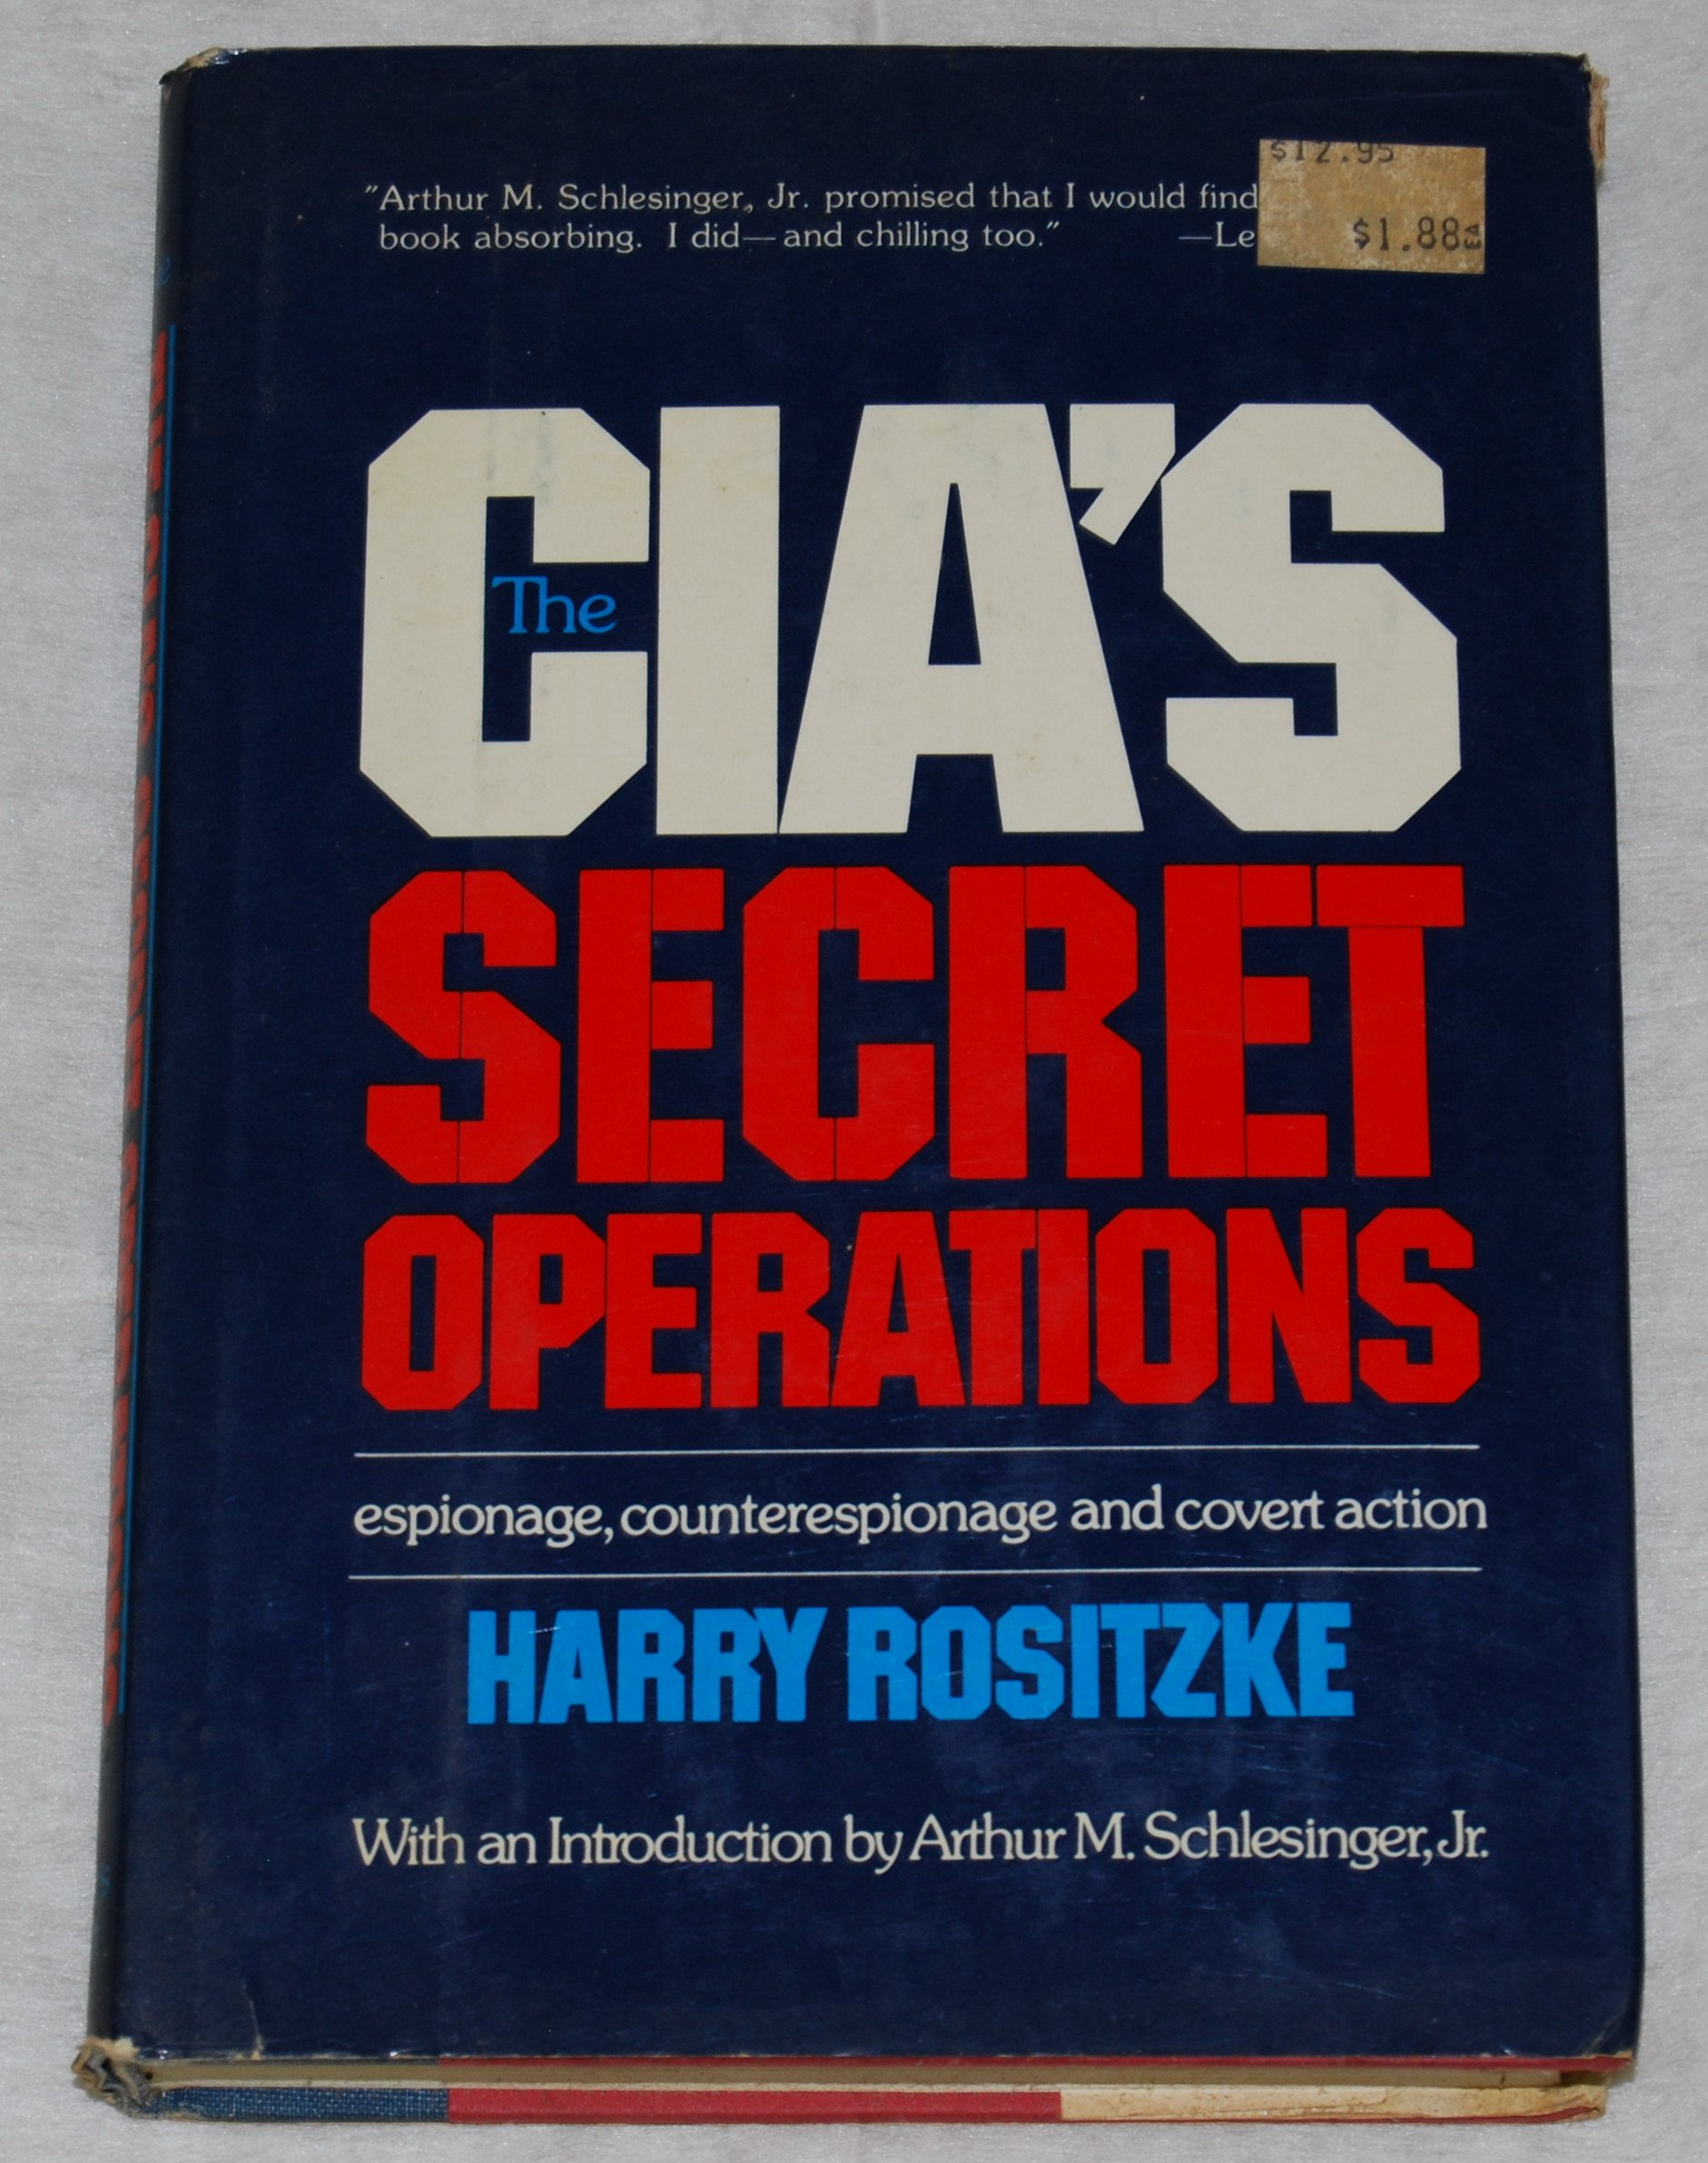 Cia's Secret Operations: Espionage, Counterespionage, and Covert Action